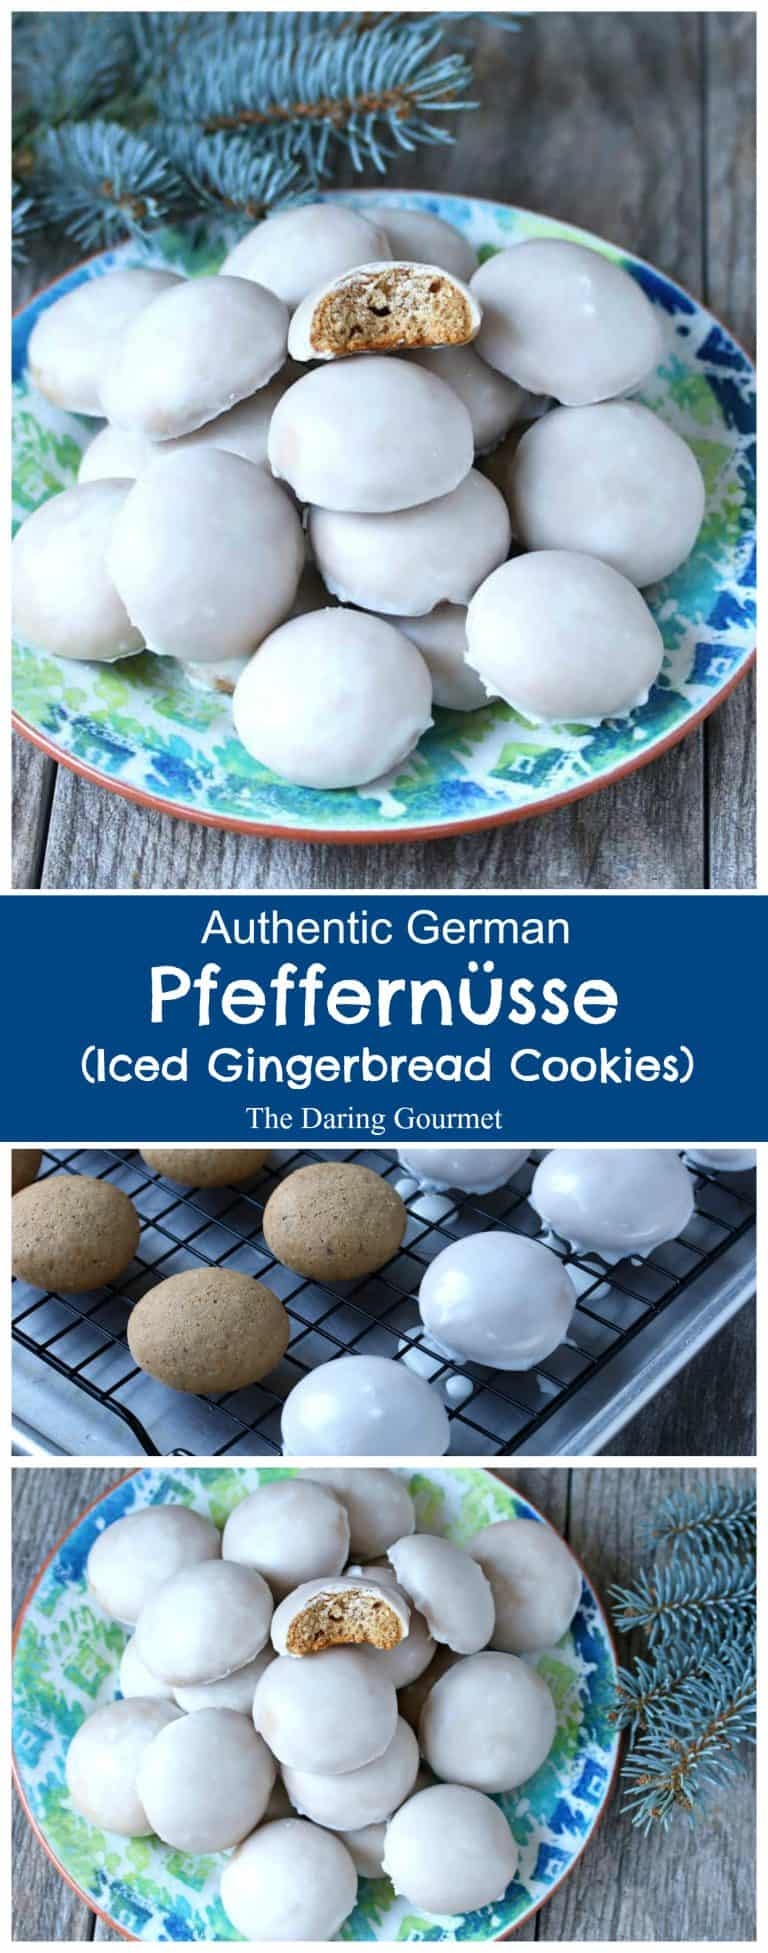 pfeffernuesse recipe german authentic traditional iced gingerbread cookies